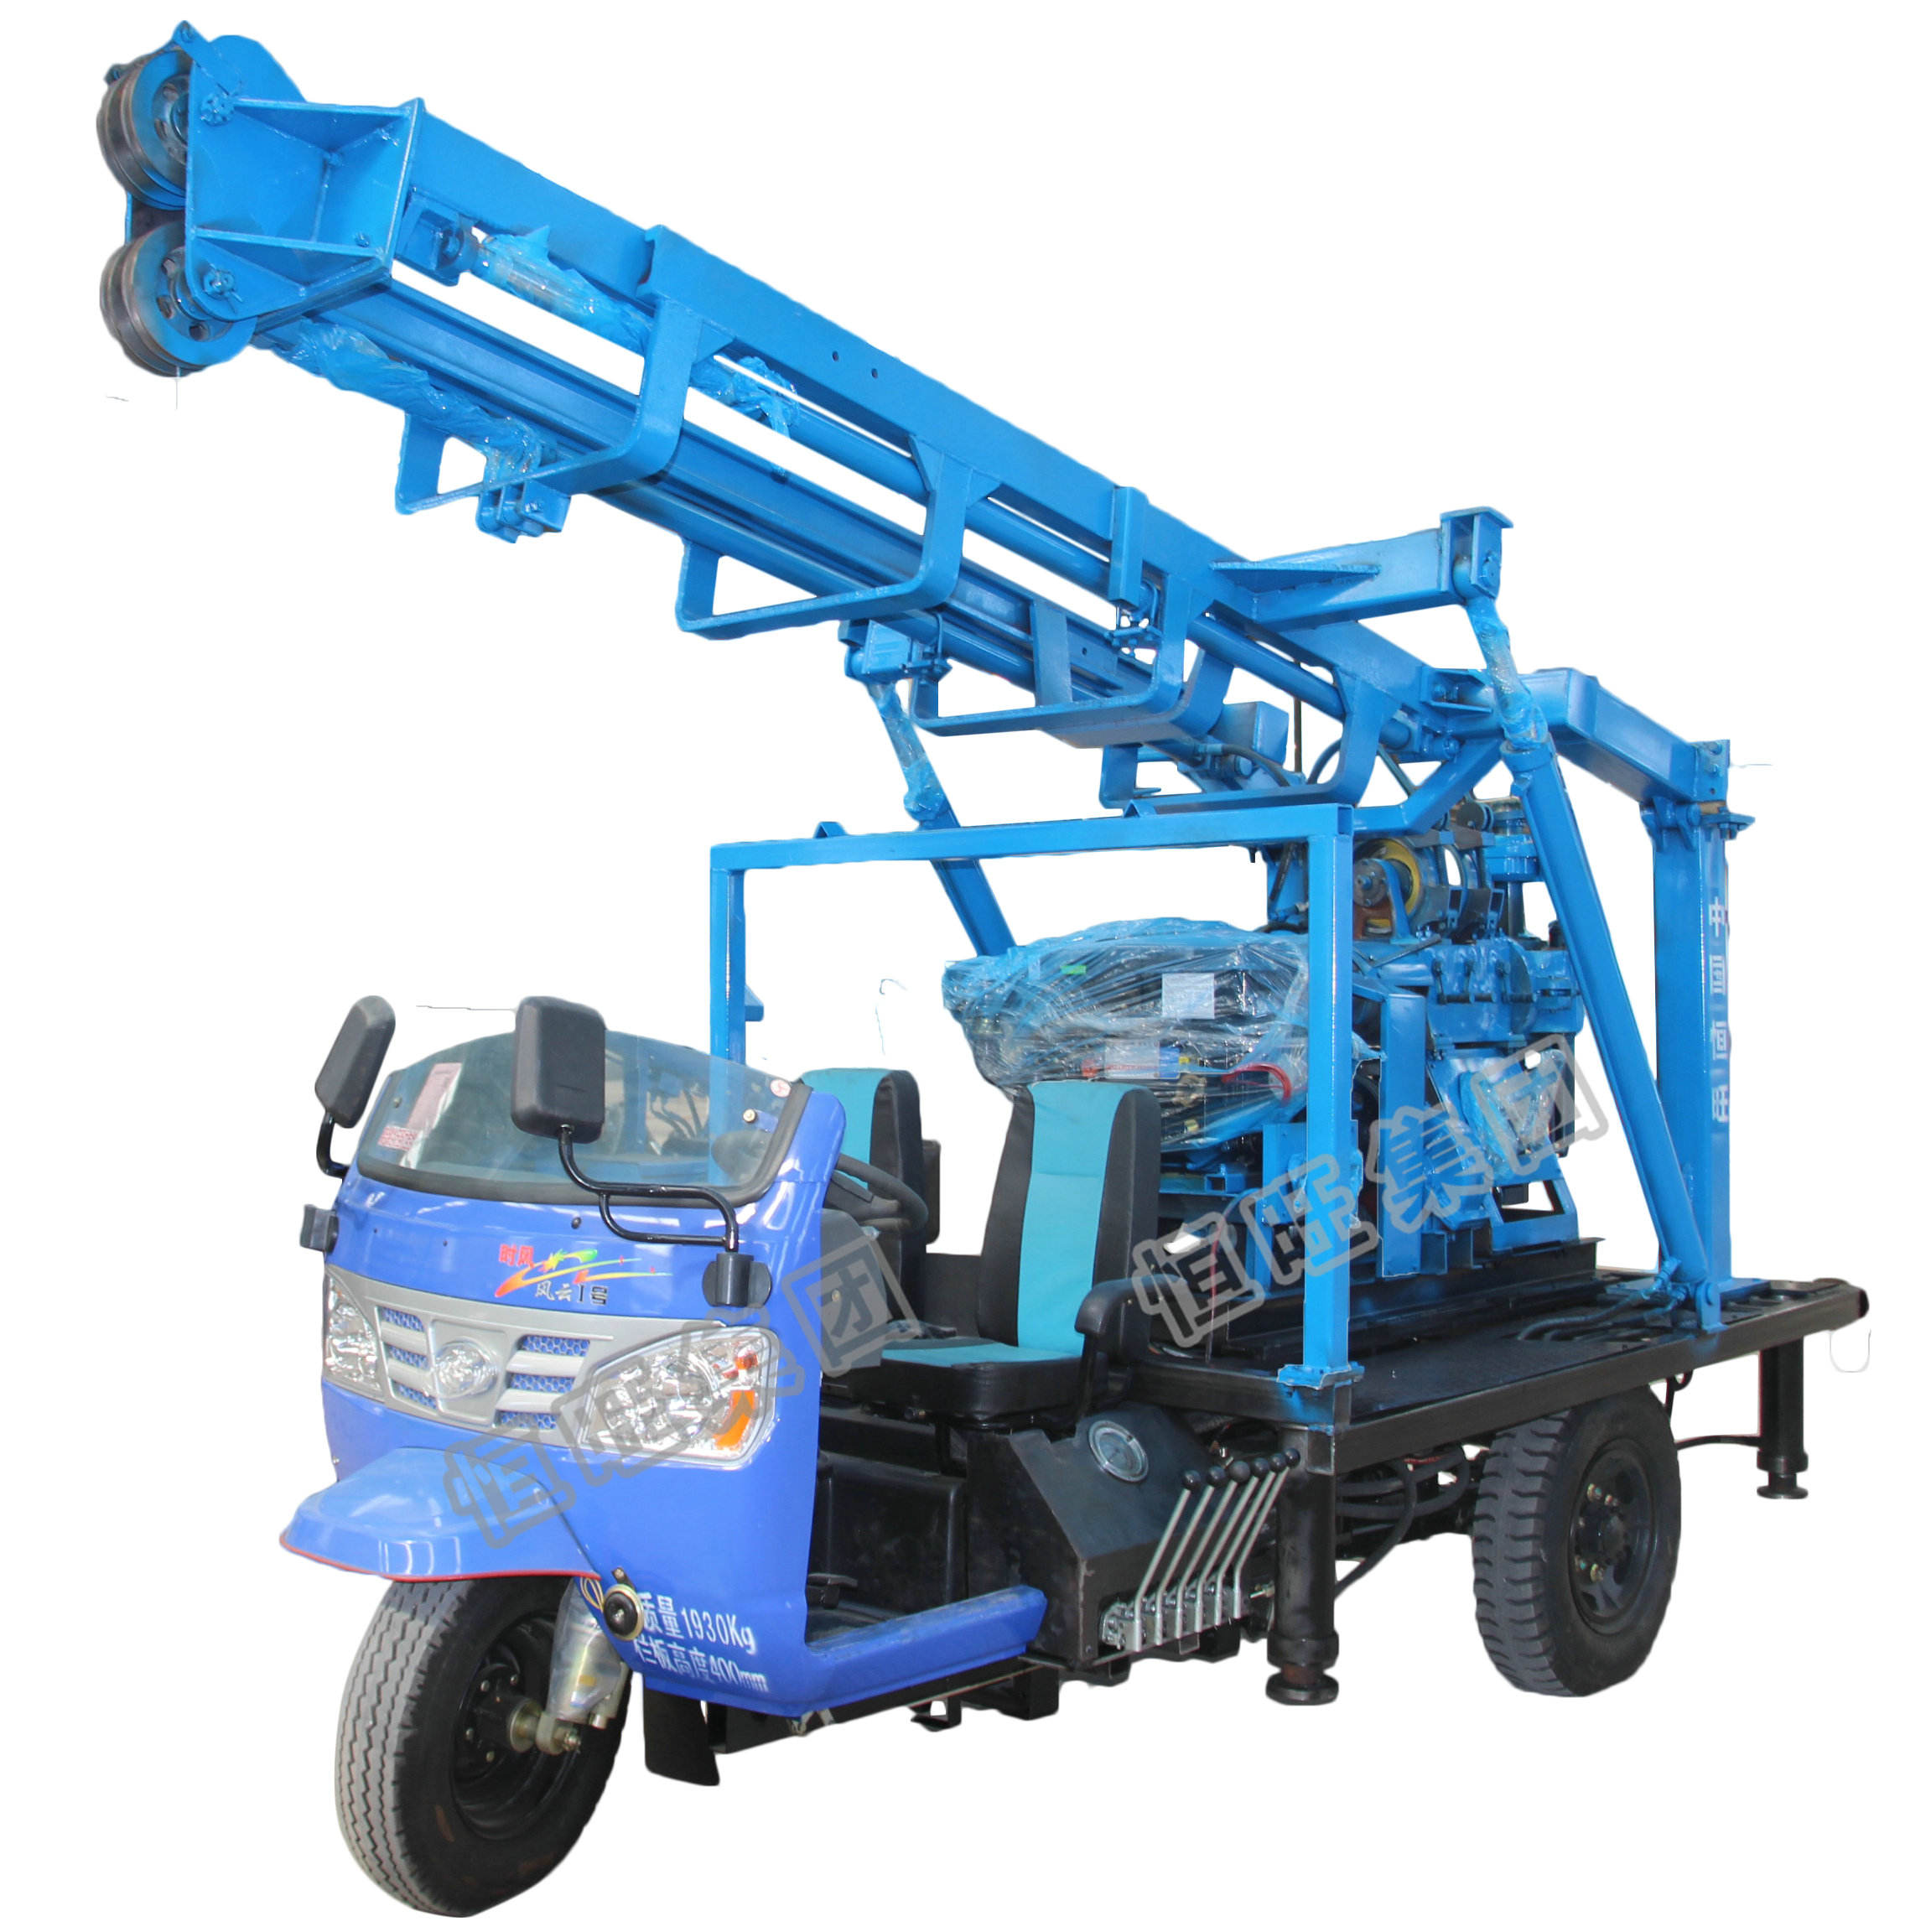 Hydraulic Core Water Well Drilling Rig Machine Equipment For Water